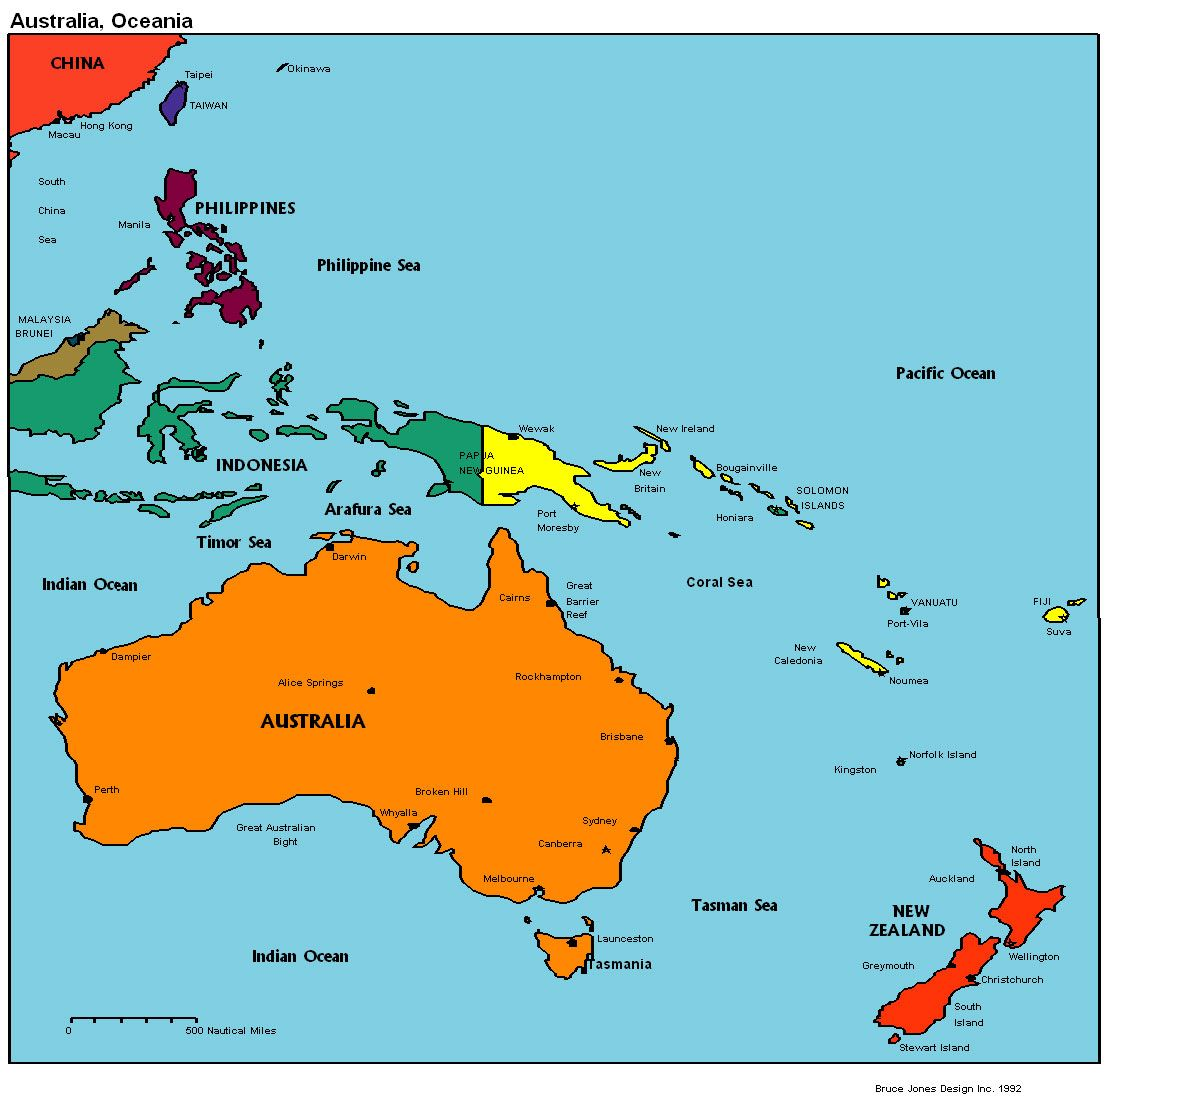 Fiji Island Location World Map.Map Of Australia Fiji Kirbati Marshall Islands Papa New Guinea